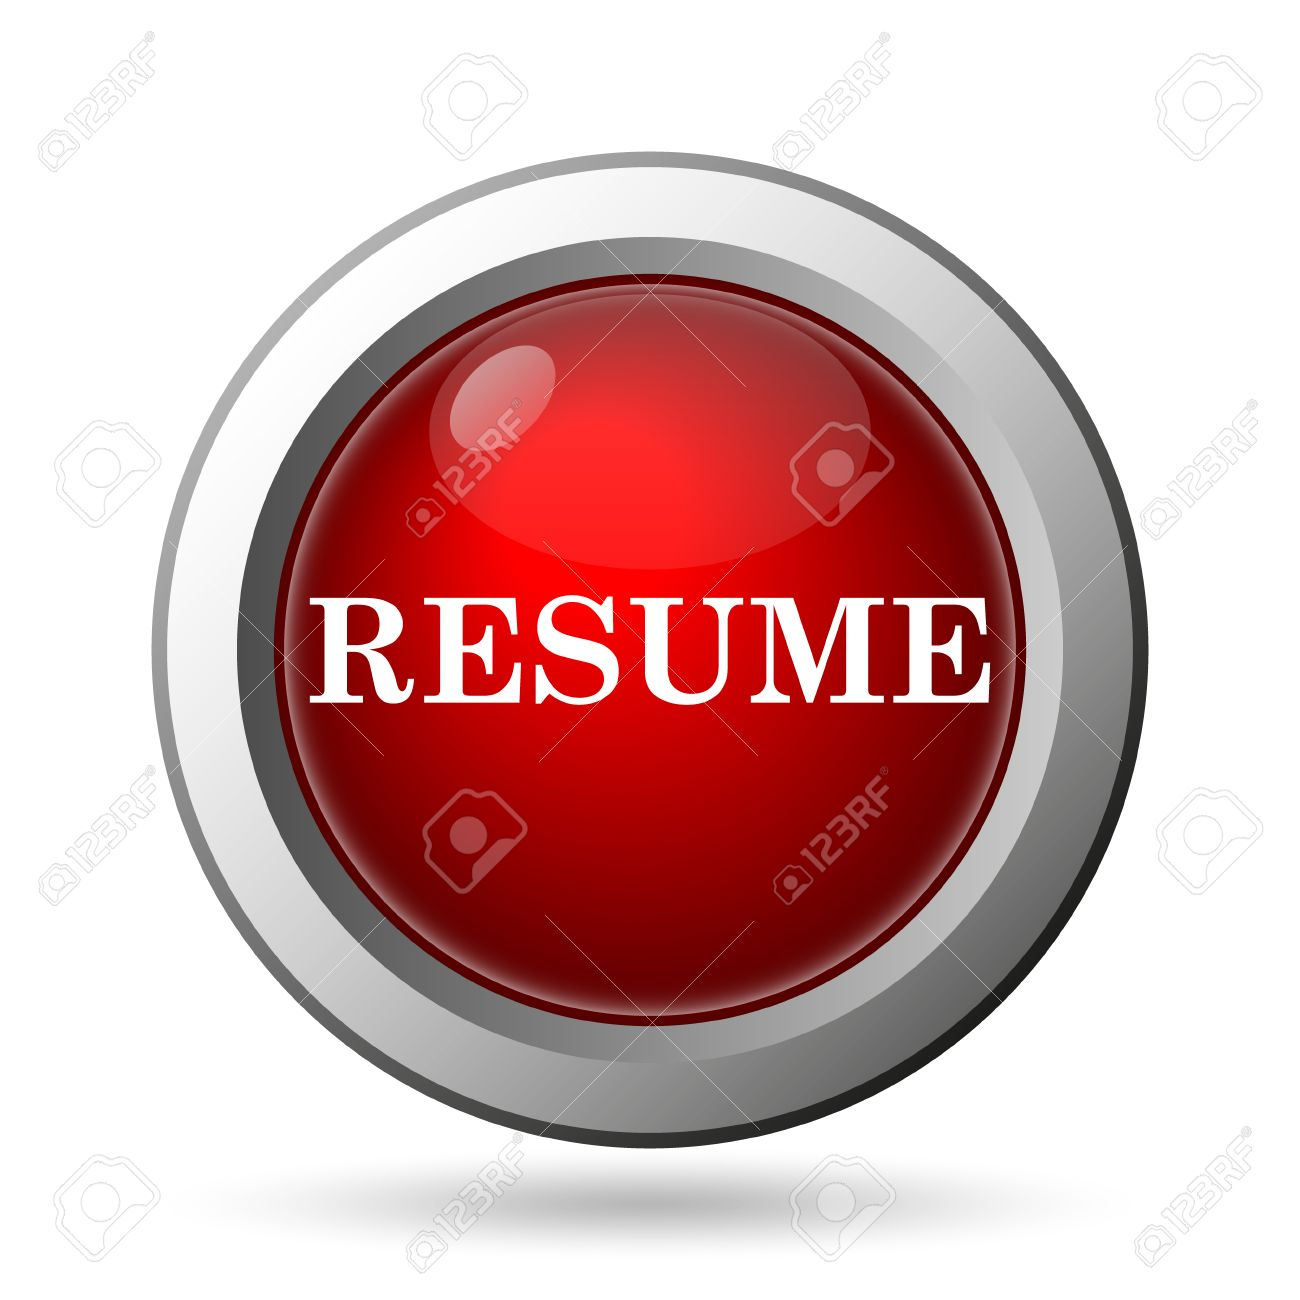 resume icon internet button on white background stock photo resume icon internet button on white background stock photo 36710065